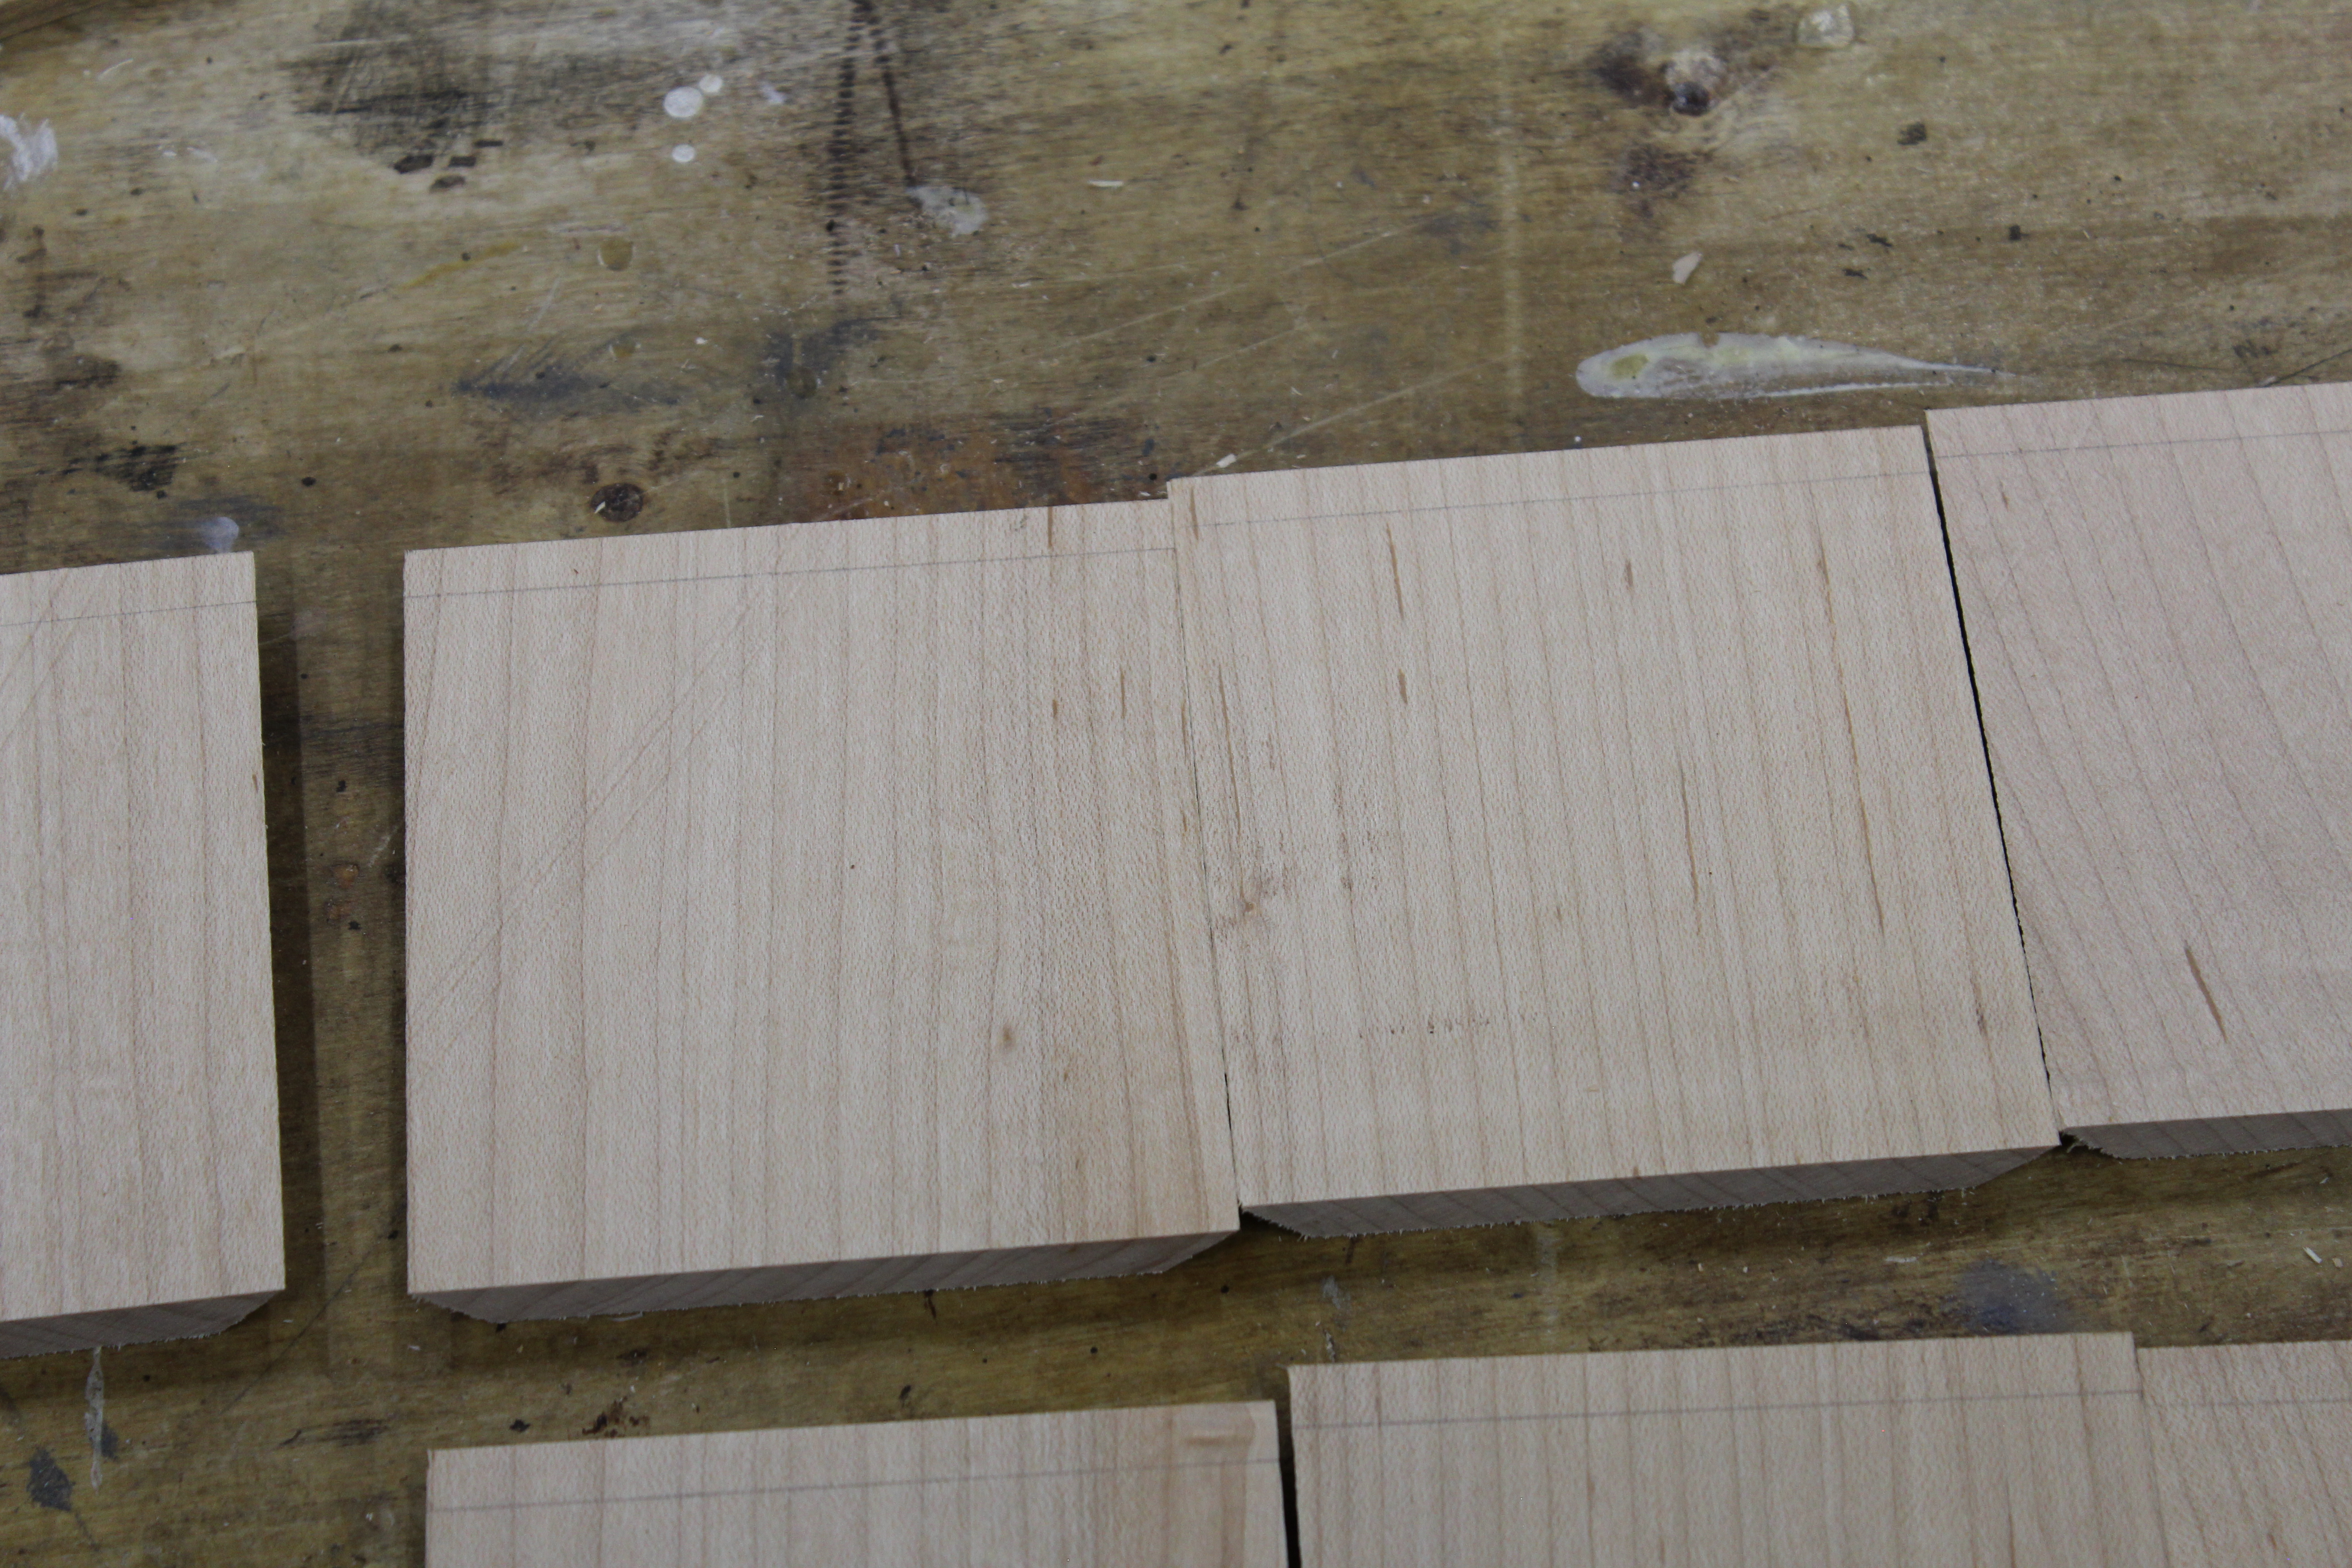 Picture of Mark the Bottoms of Each Wall for the Bottom Insert.